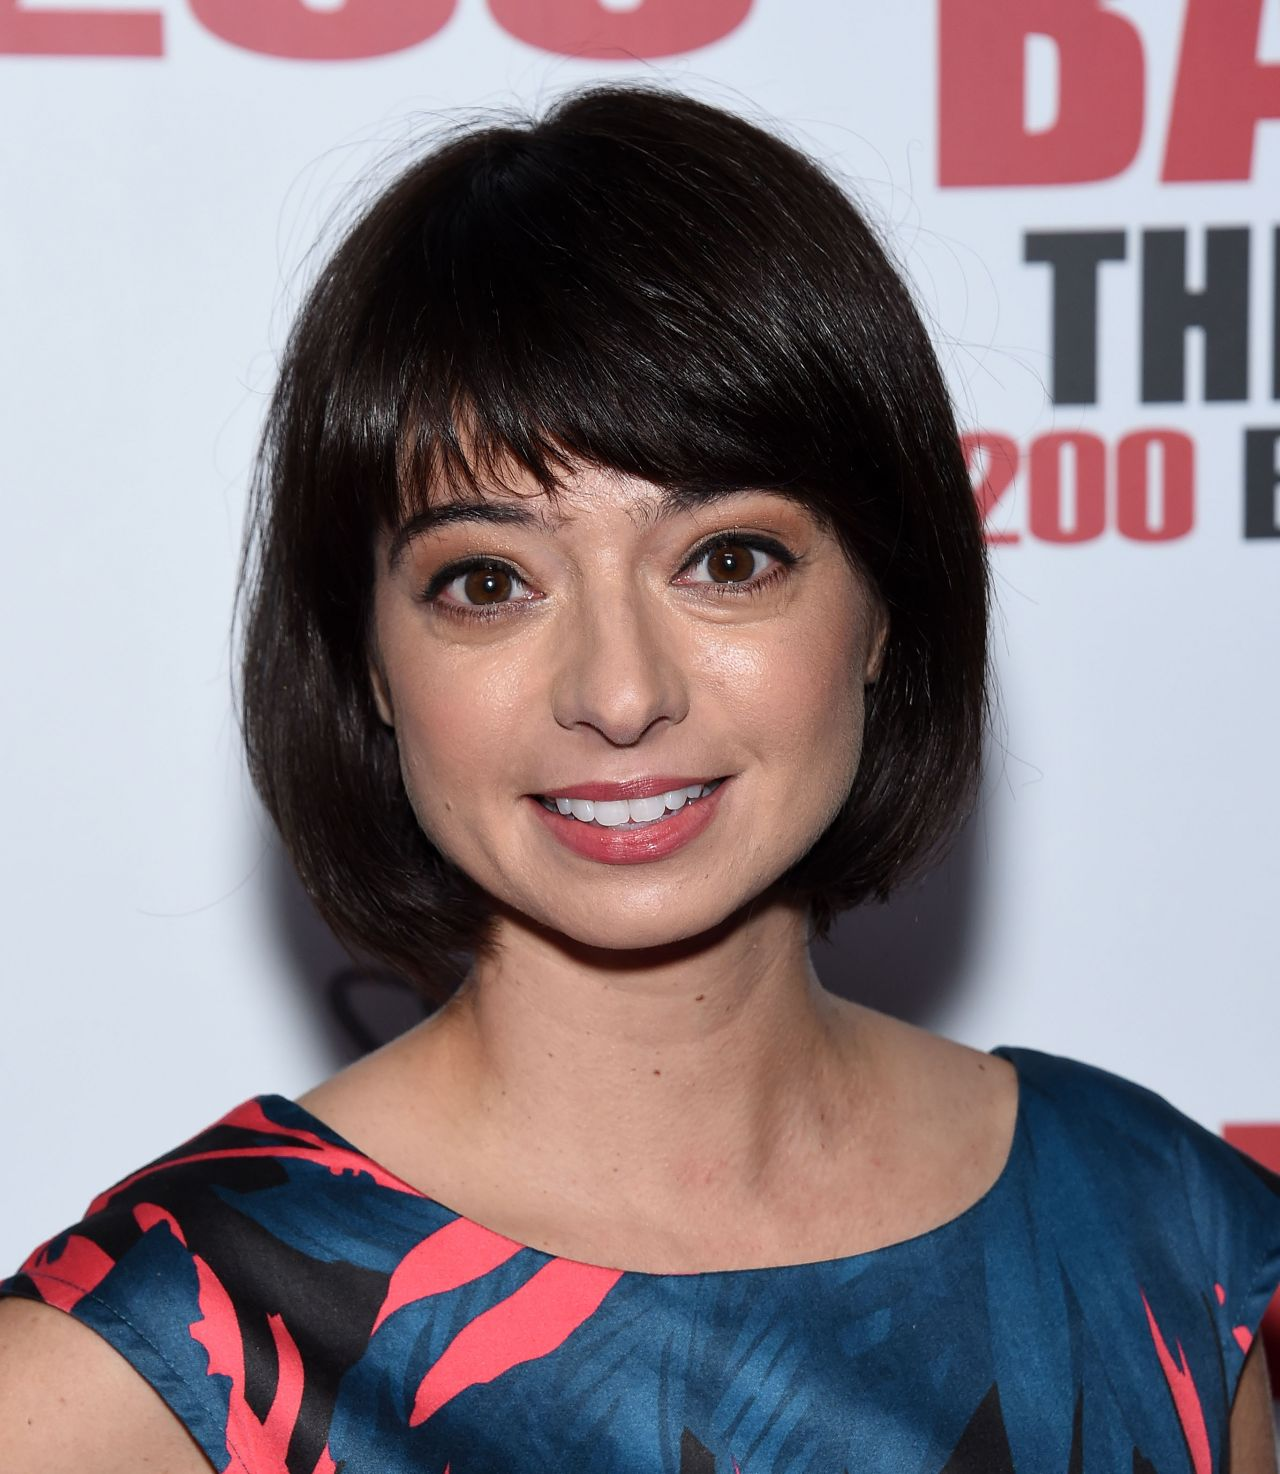 Images Kate Micucci nudes (71 photos), Pussy, Hot, Instagram, cleavage 2006